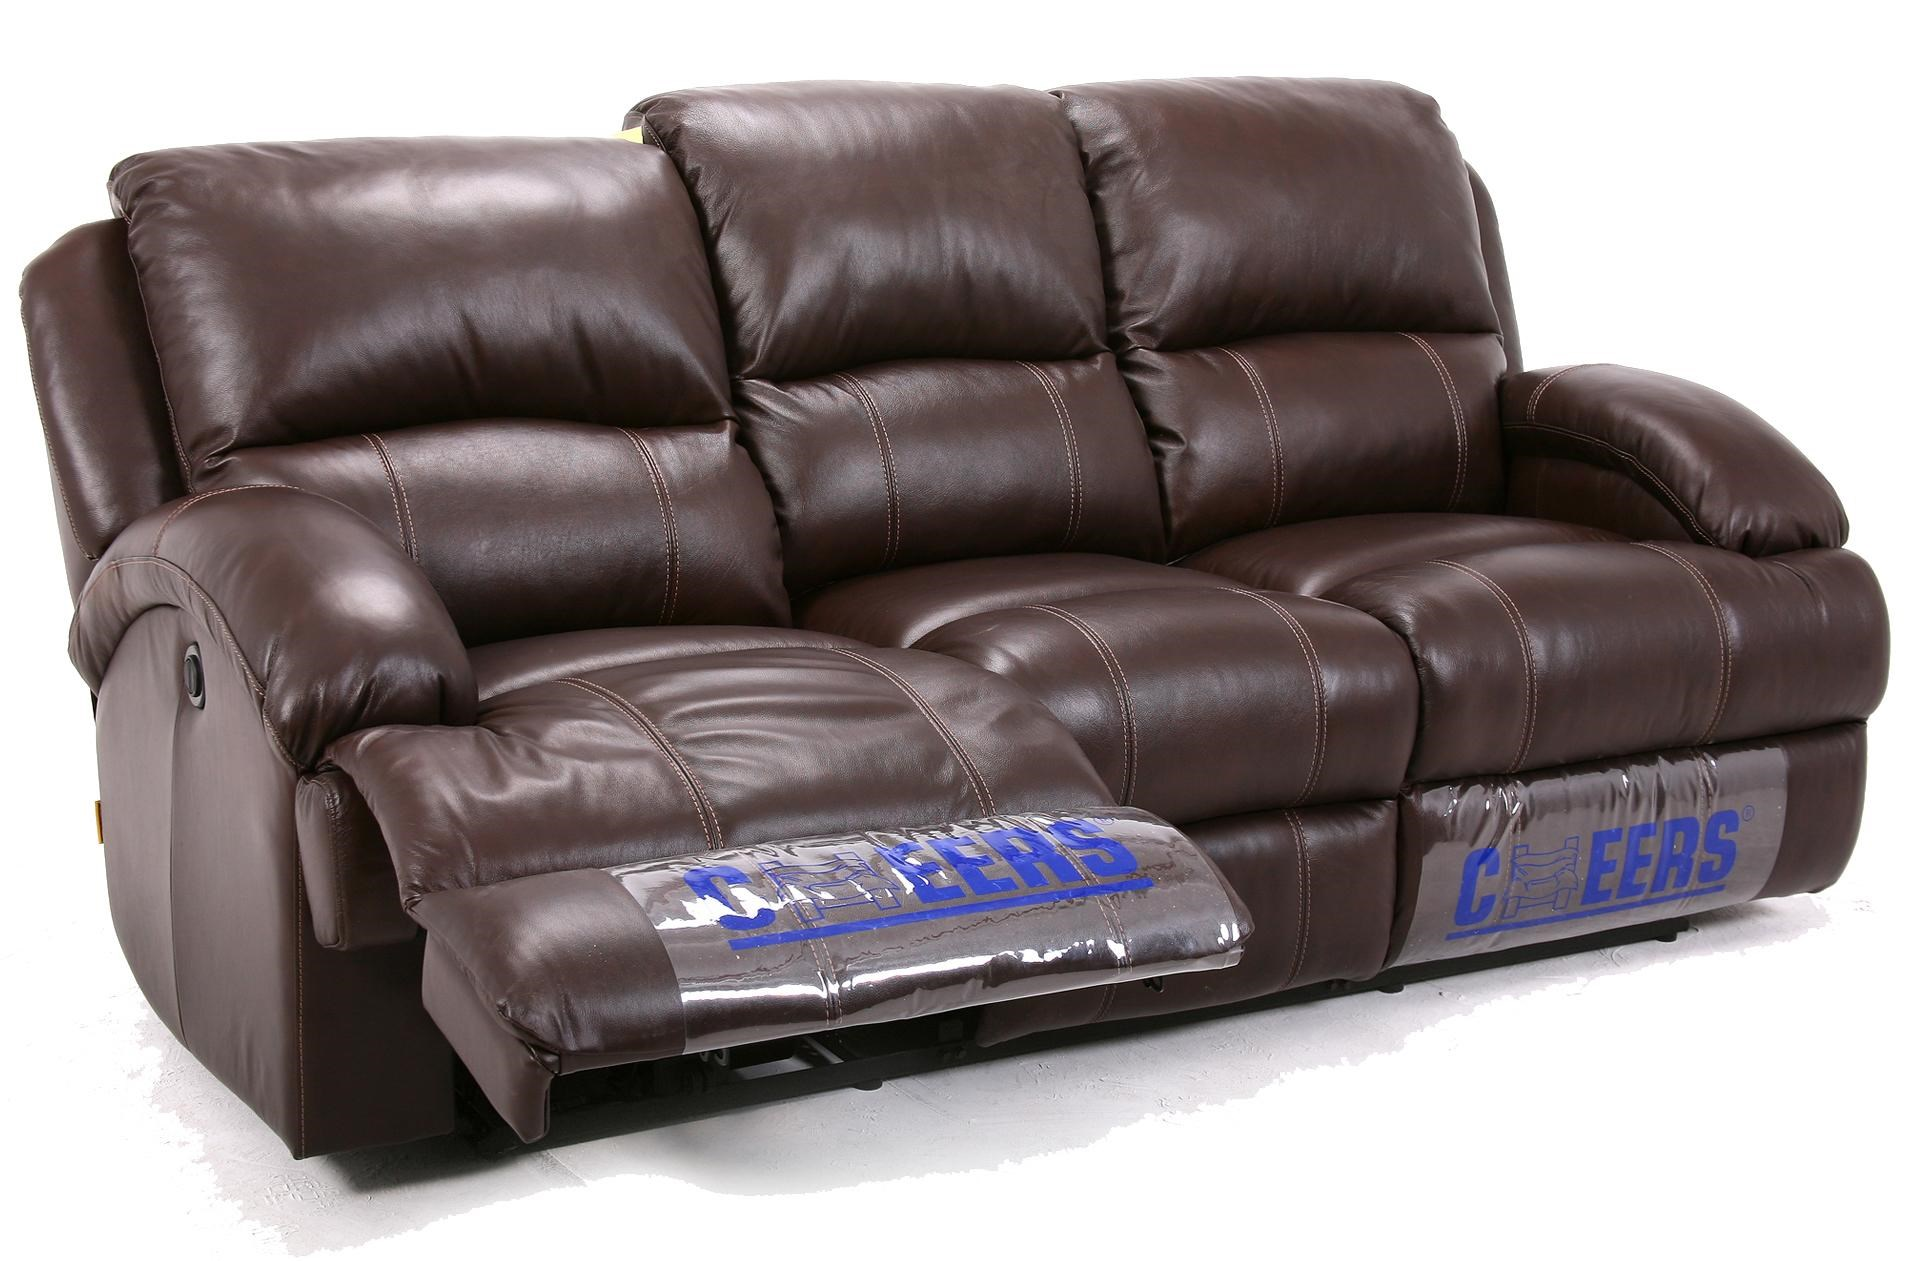 Cheers Sofa UXW8626M Casual Power Reclining Sofa with  : products2Fcheerssofa2Fcolor2Fu8626u8626 l3 2e b from hudsonsfurniture.com size 500 x 500 jpeg 31kB